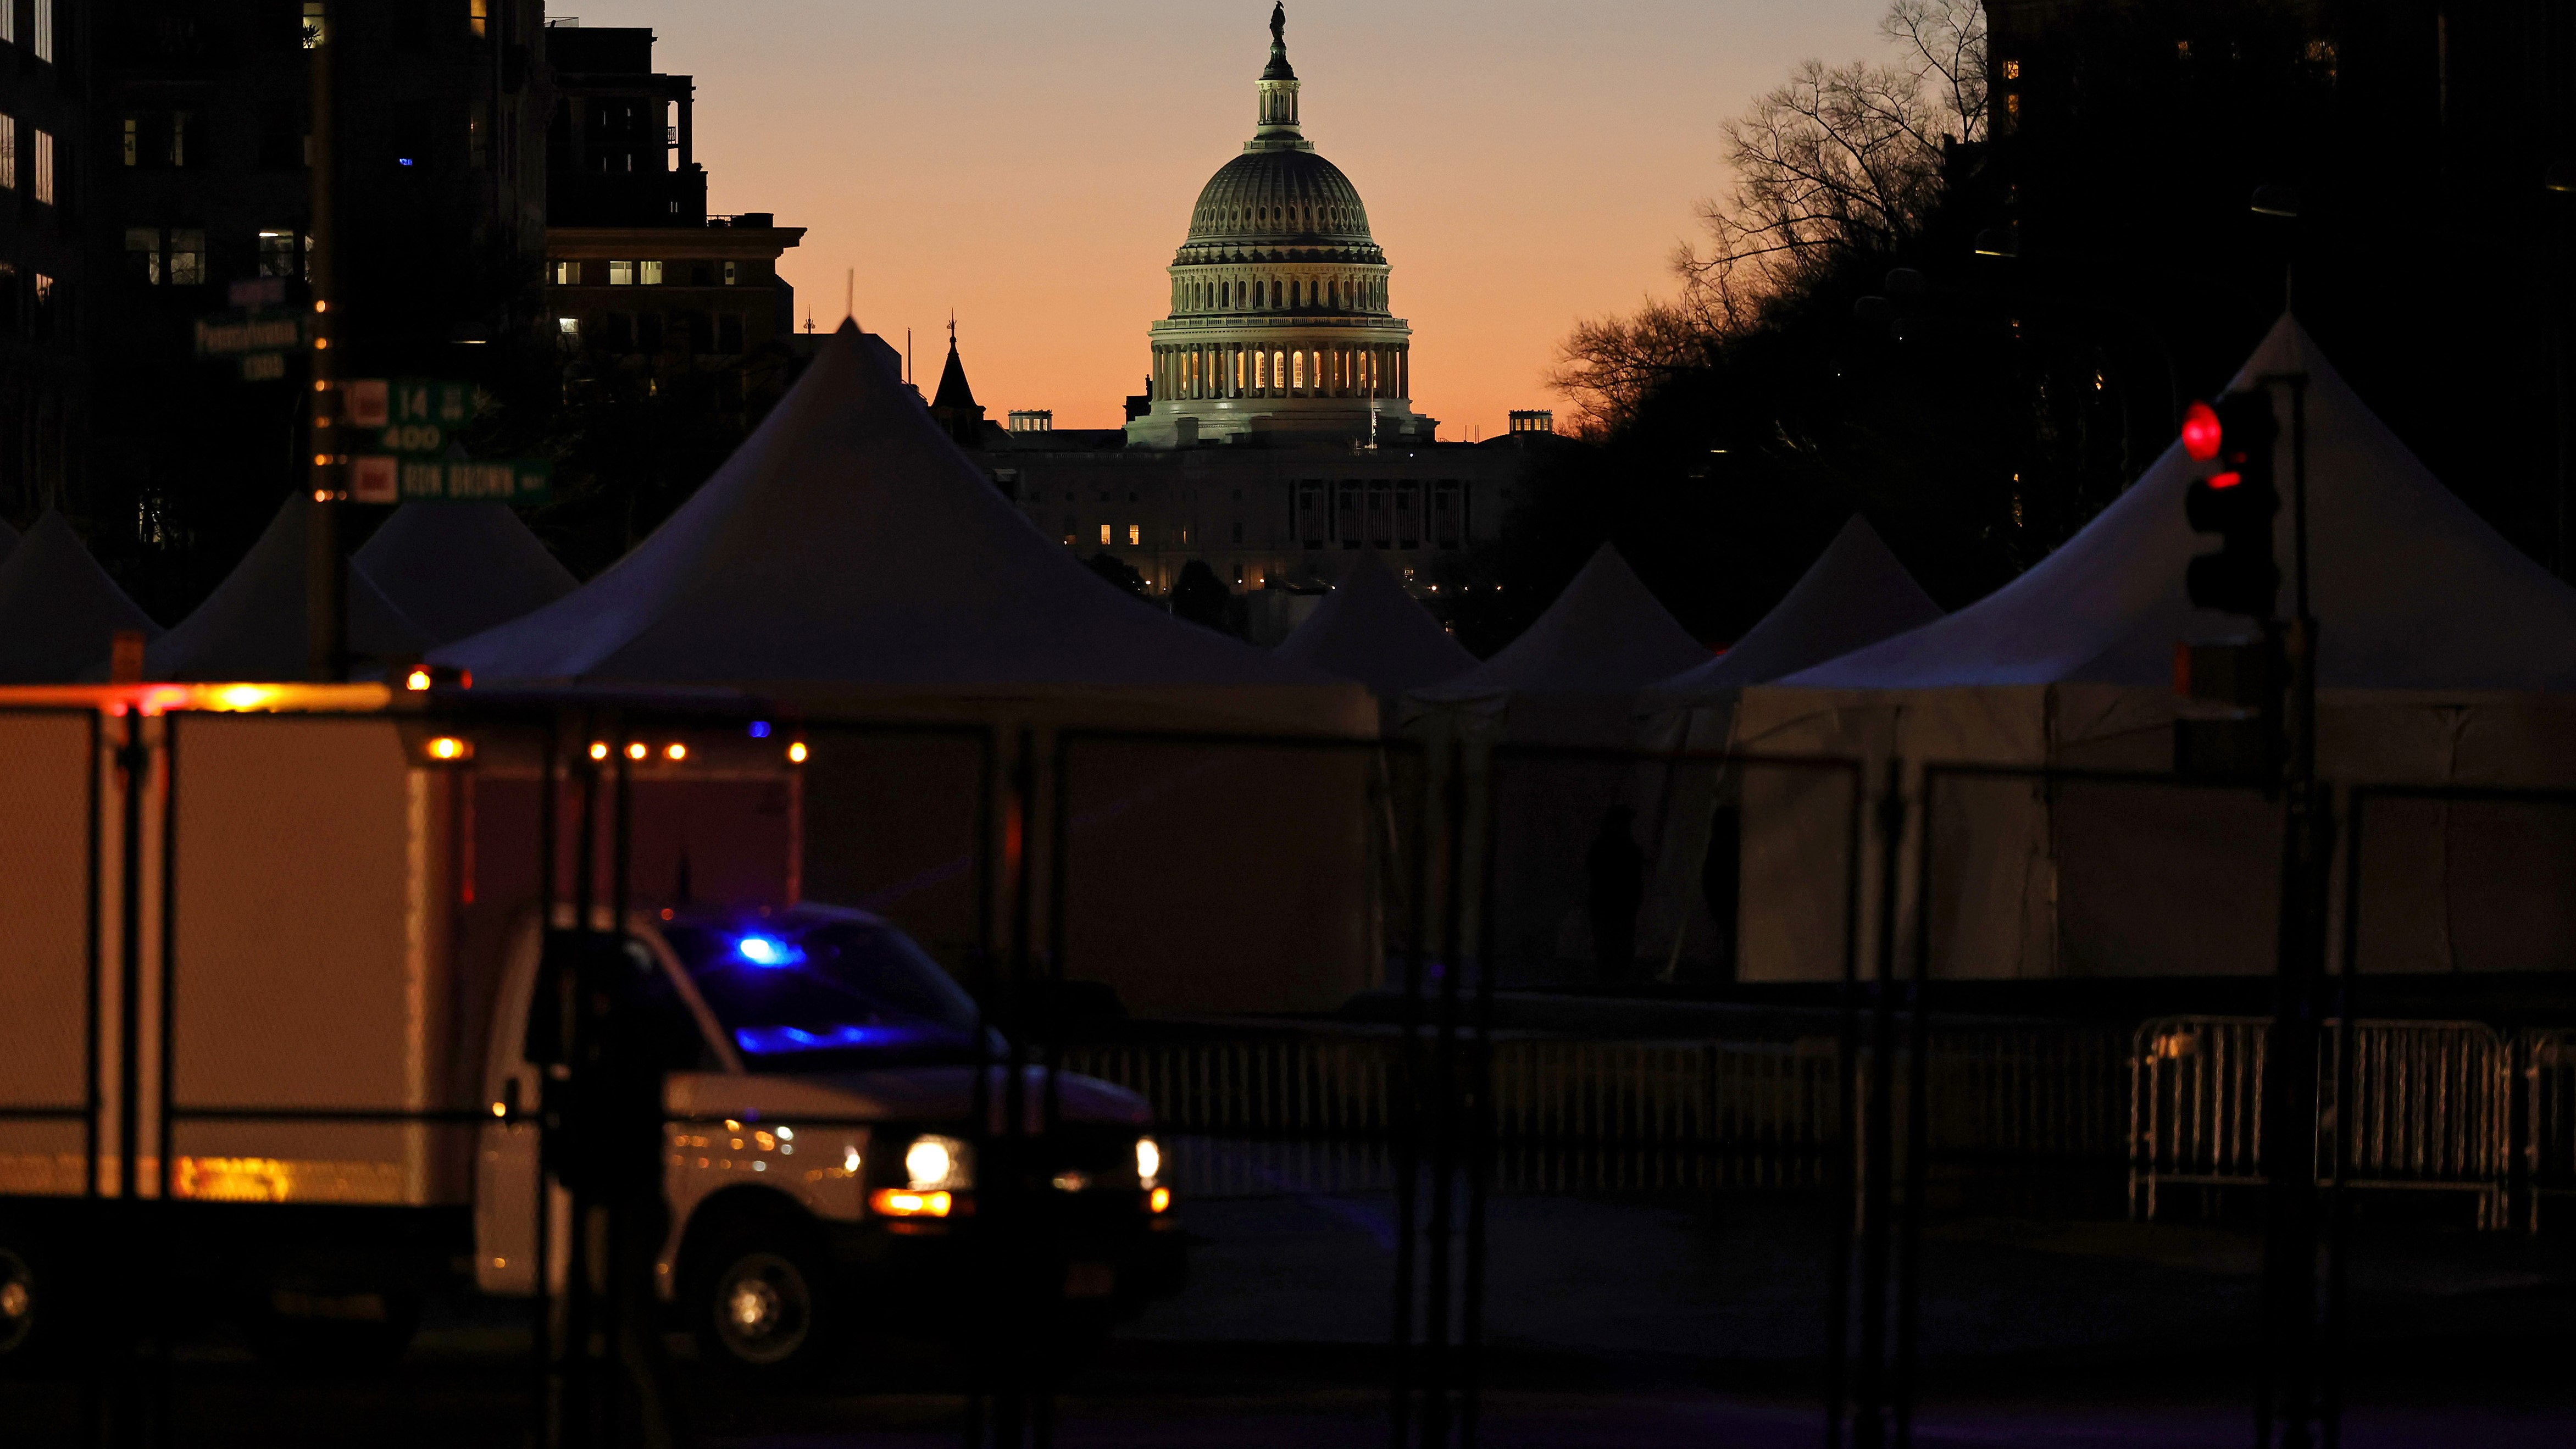 Man Arrested on Gun Charges at Inauguration Checkpoint Says He Made Honest Mistake